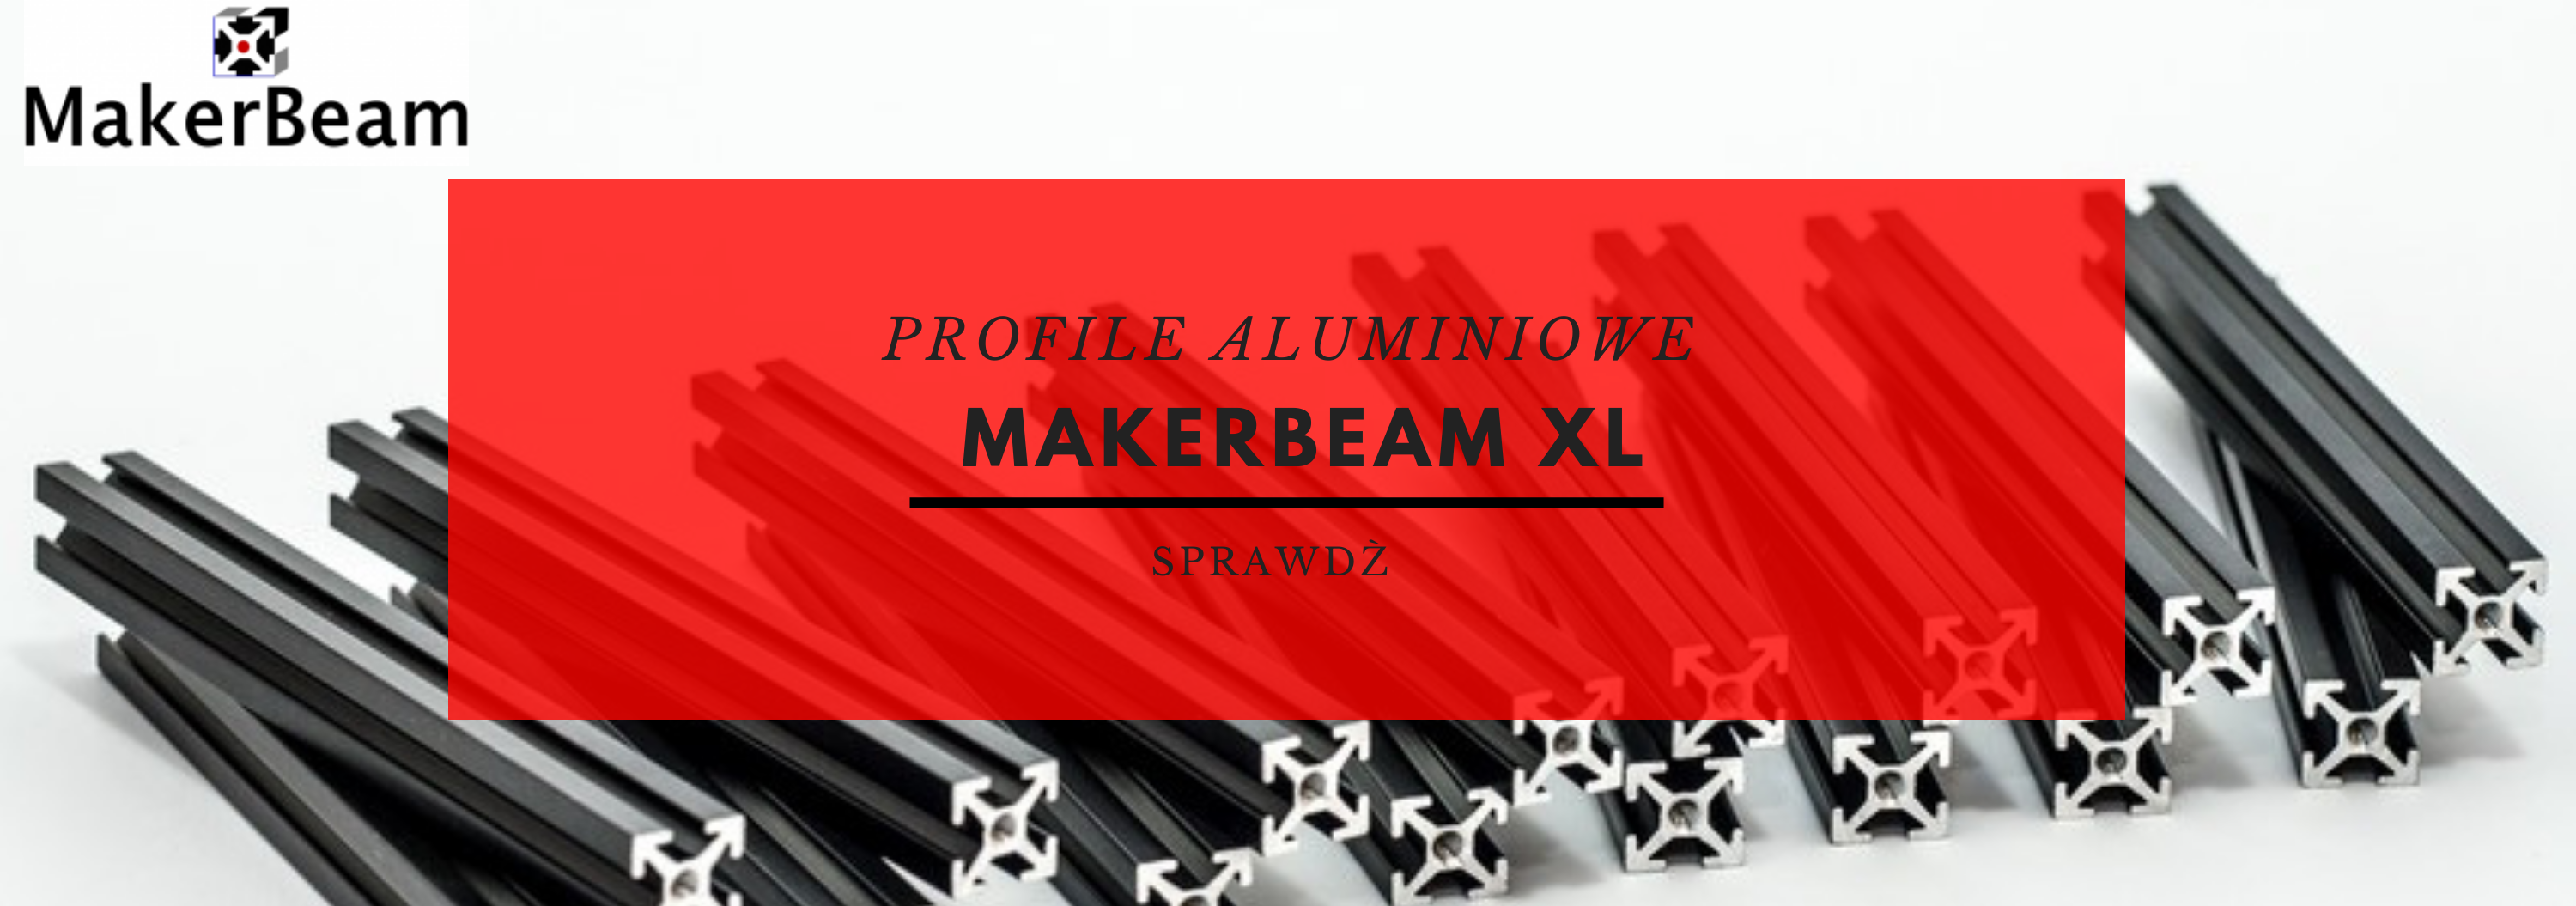 MAKERBEAM XL